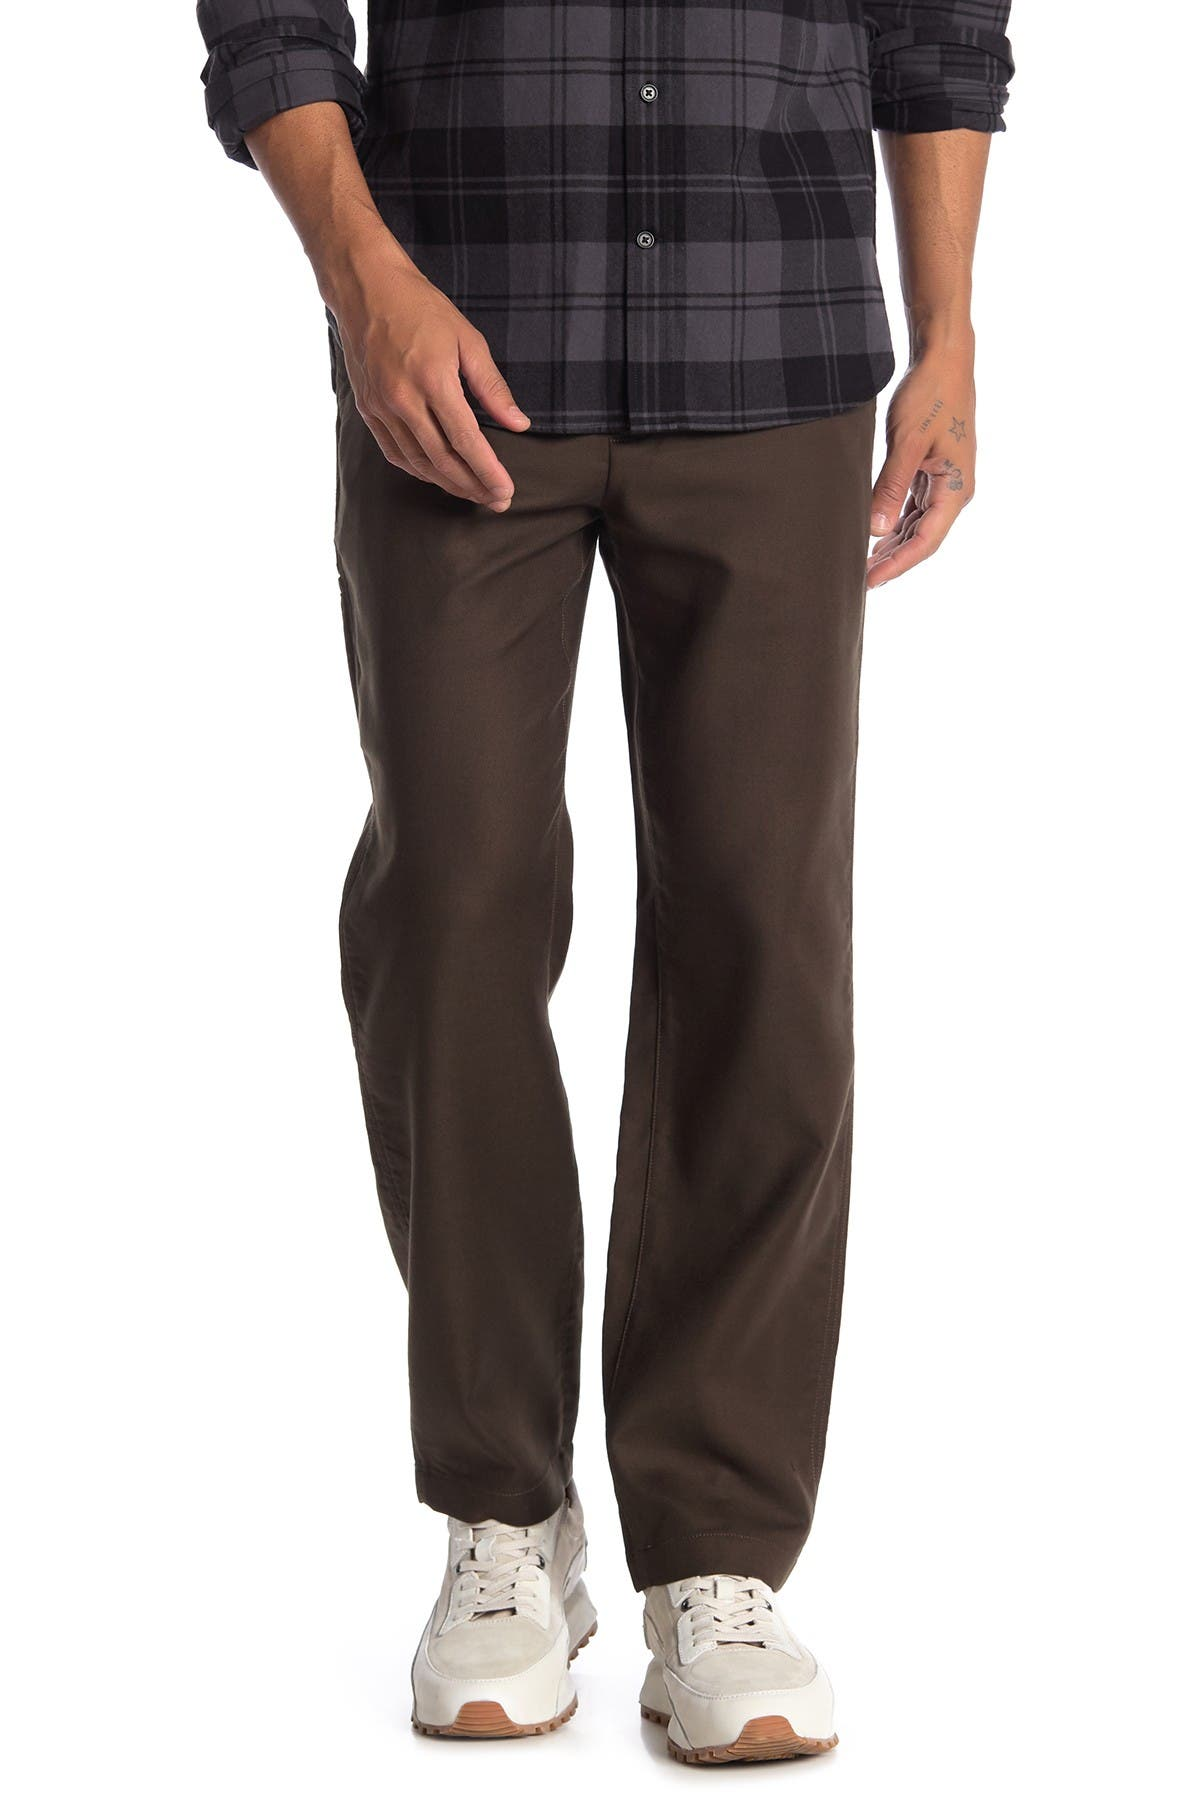 Image of Vince Solid Utility Chino Pants